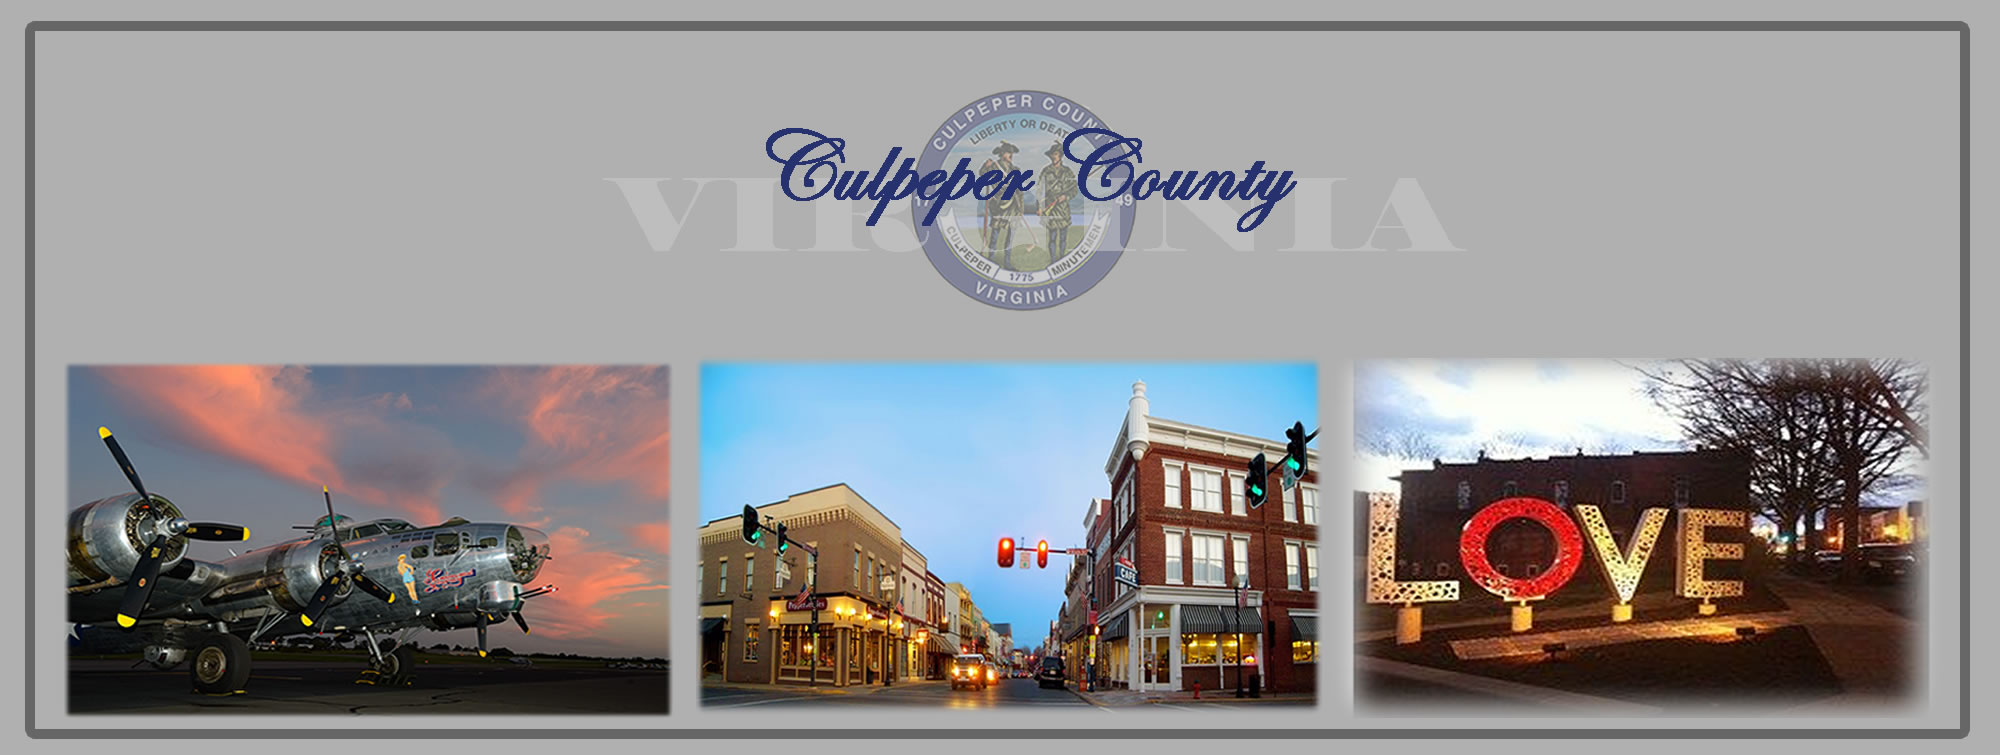 Culpeper County Pictures